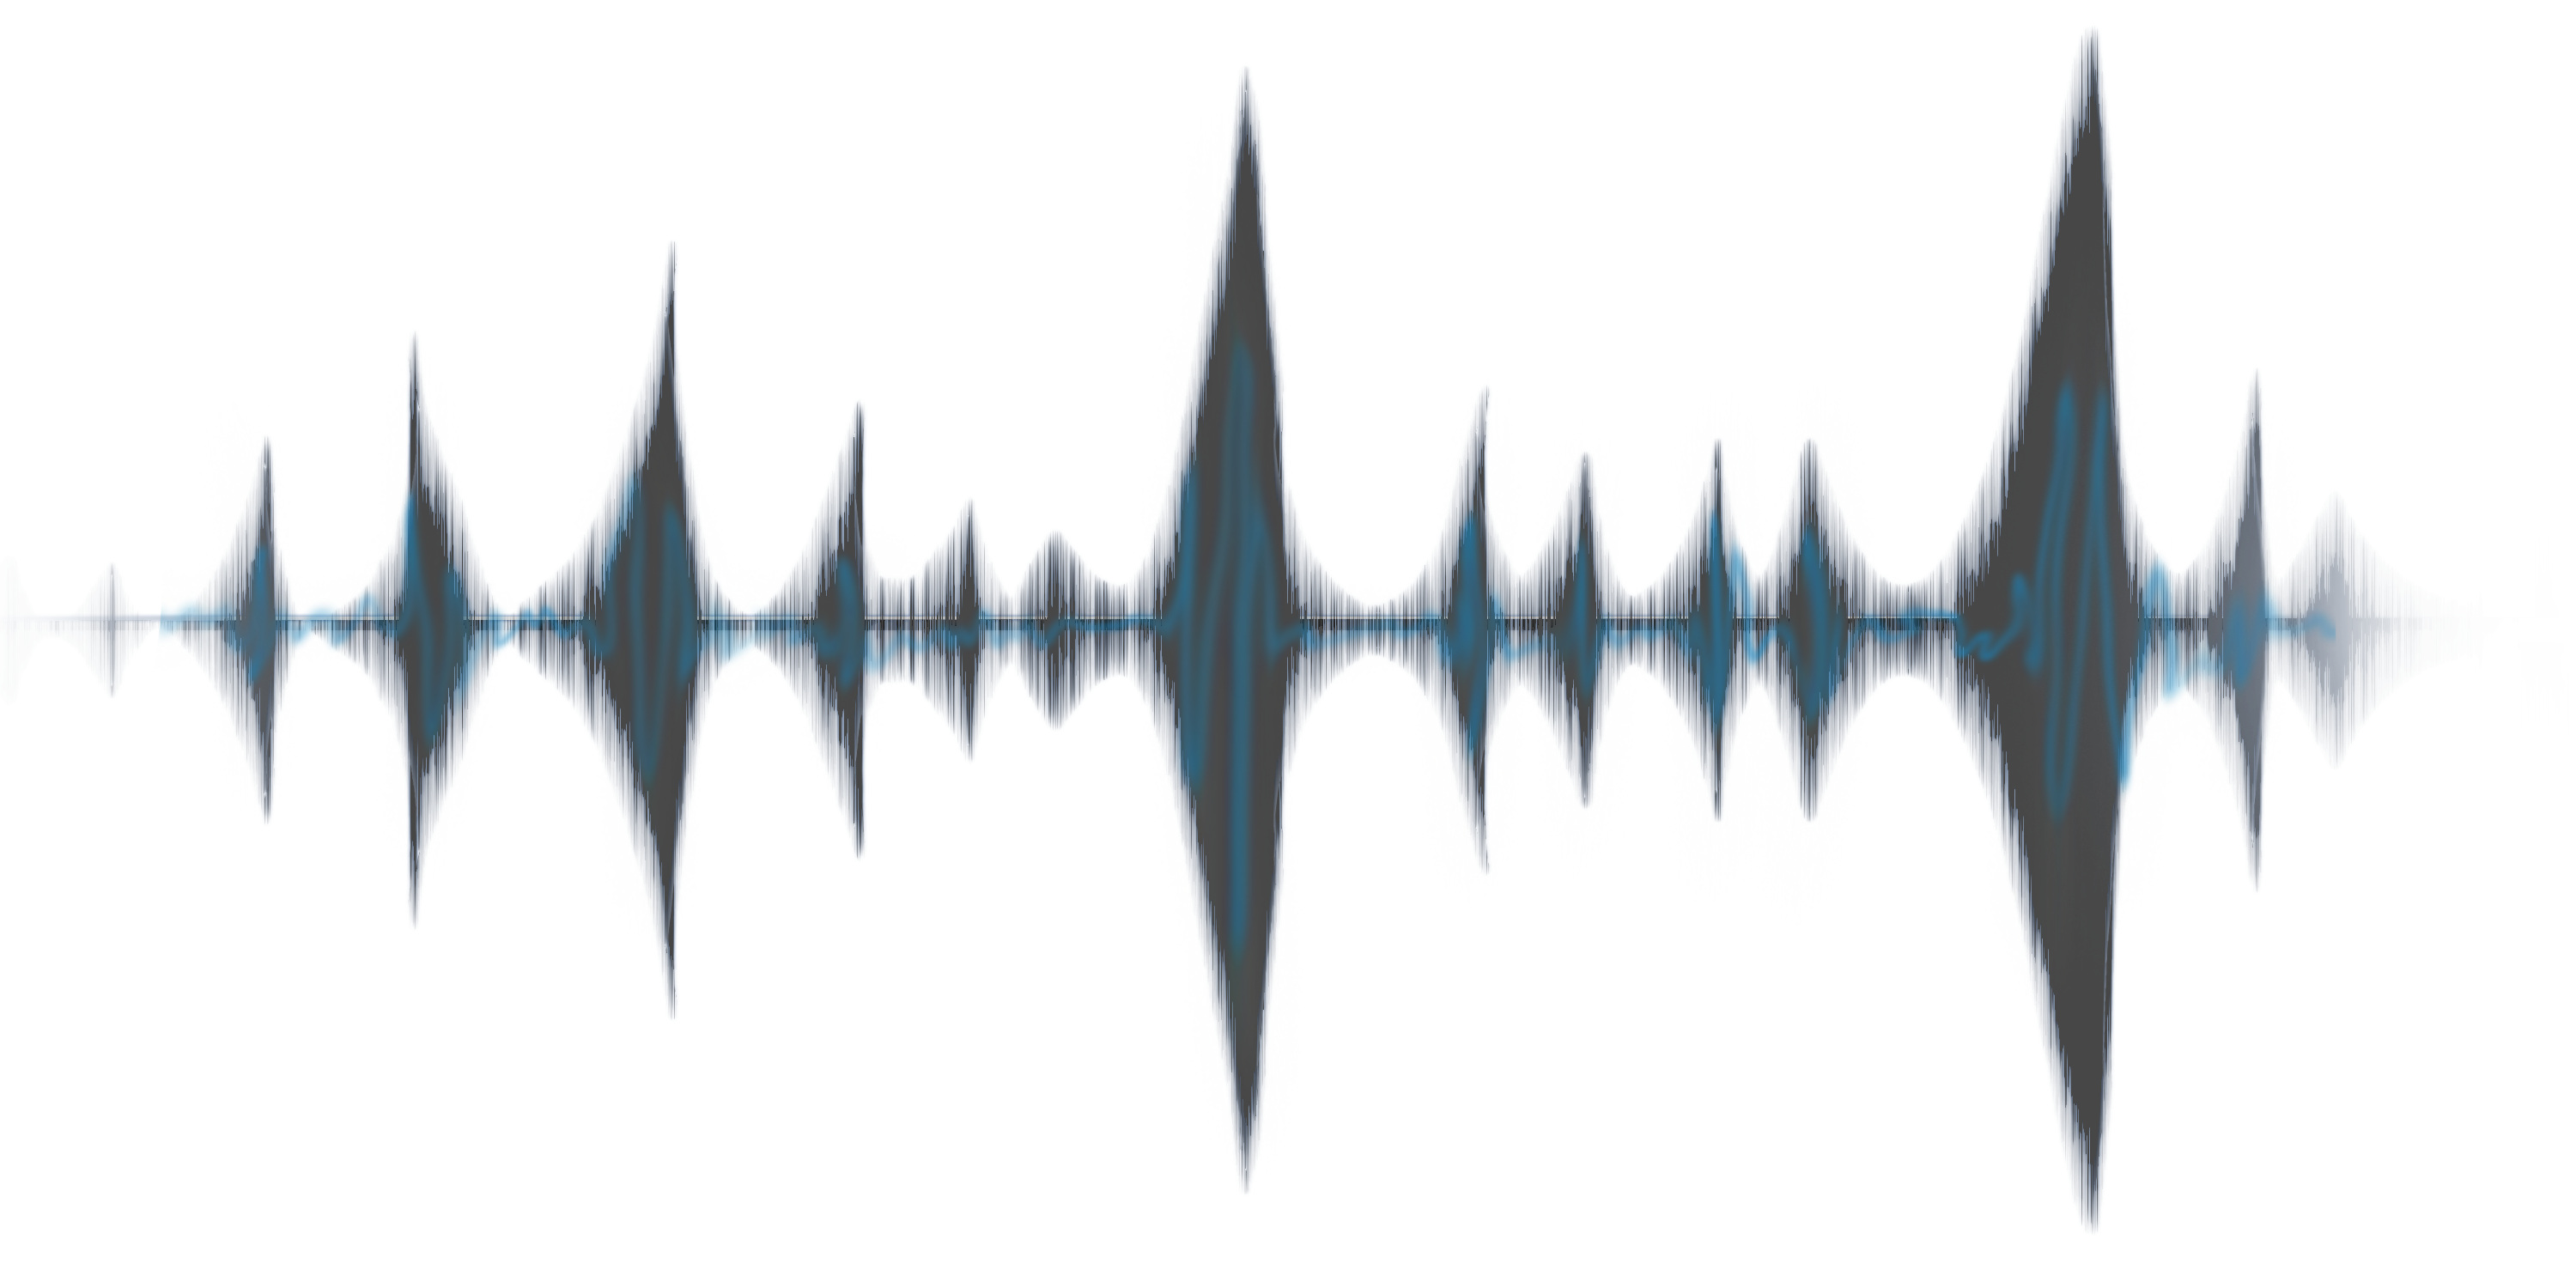 Sound Wave Transparent PNG Image